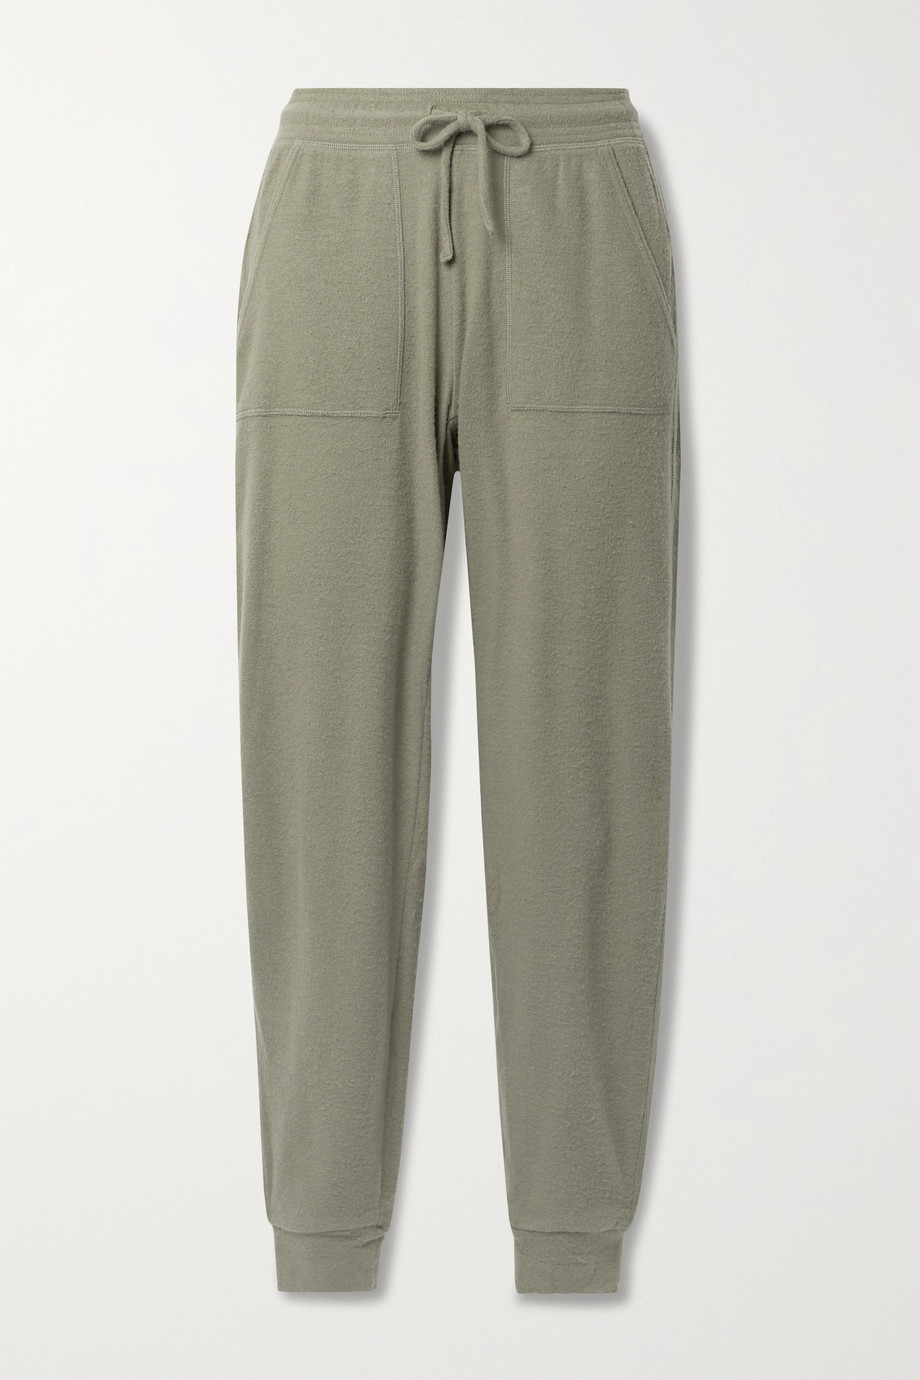 ALO YOGA Soho brushed stretch-jersey track pants